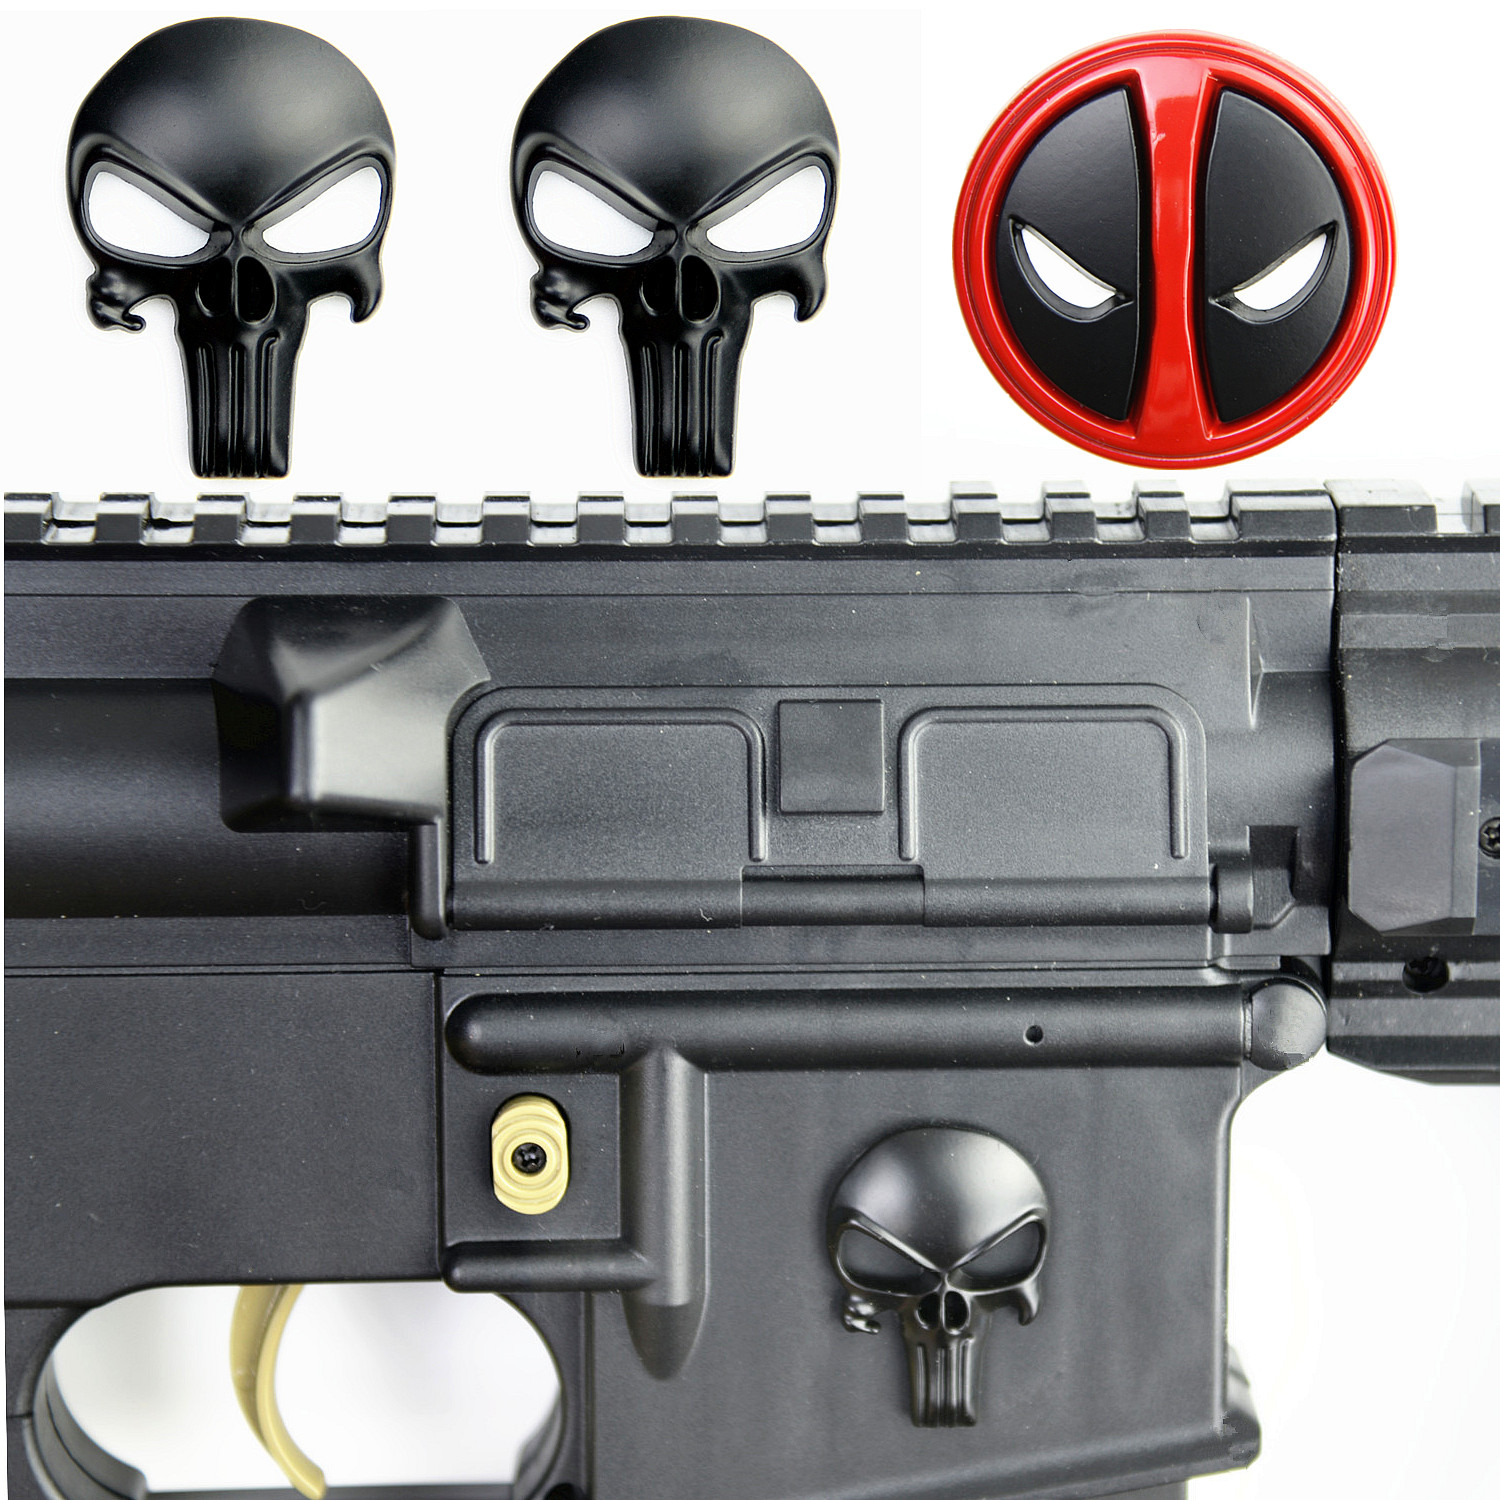 3D Punisher Skull Deadpool Magwell Metal Decal Badge Sticker for AR15 AK47 M4 M16 Airsoft Rifle Pistol Gun Hunting Accessories(China)